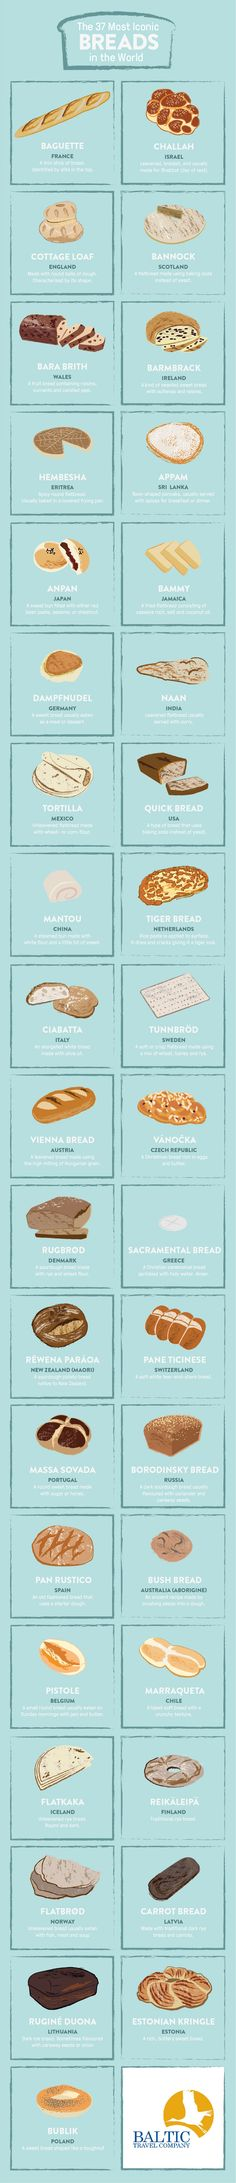 37 Iconic Breads from Around the World >> https://www.finedininglovers.com/blog/food-drinks/different-bread-styes/